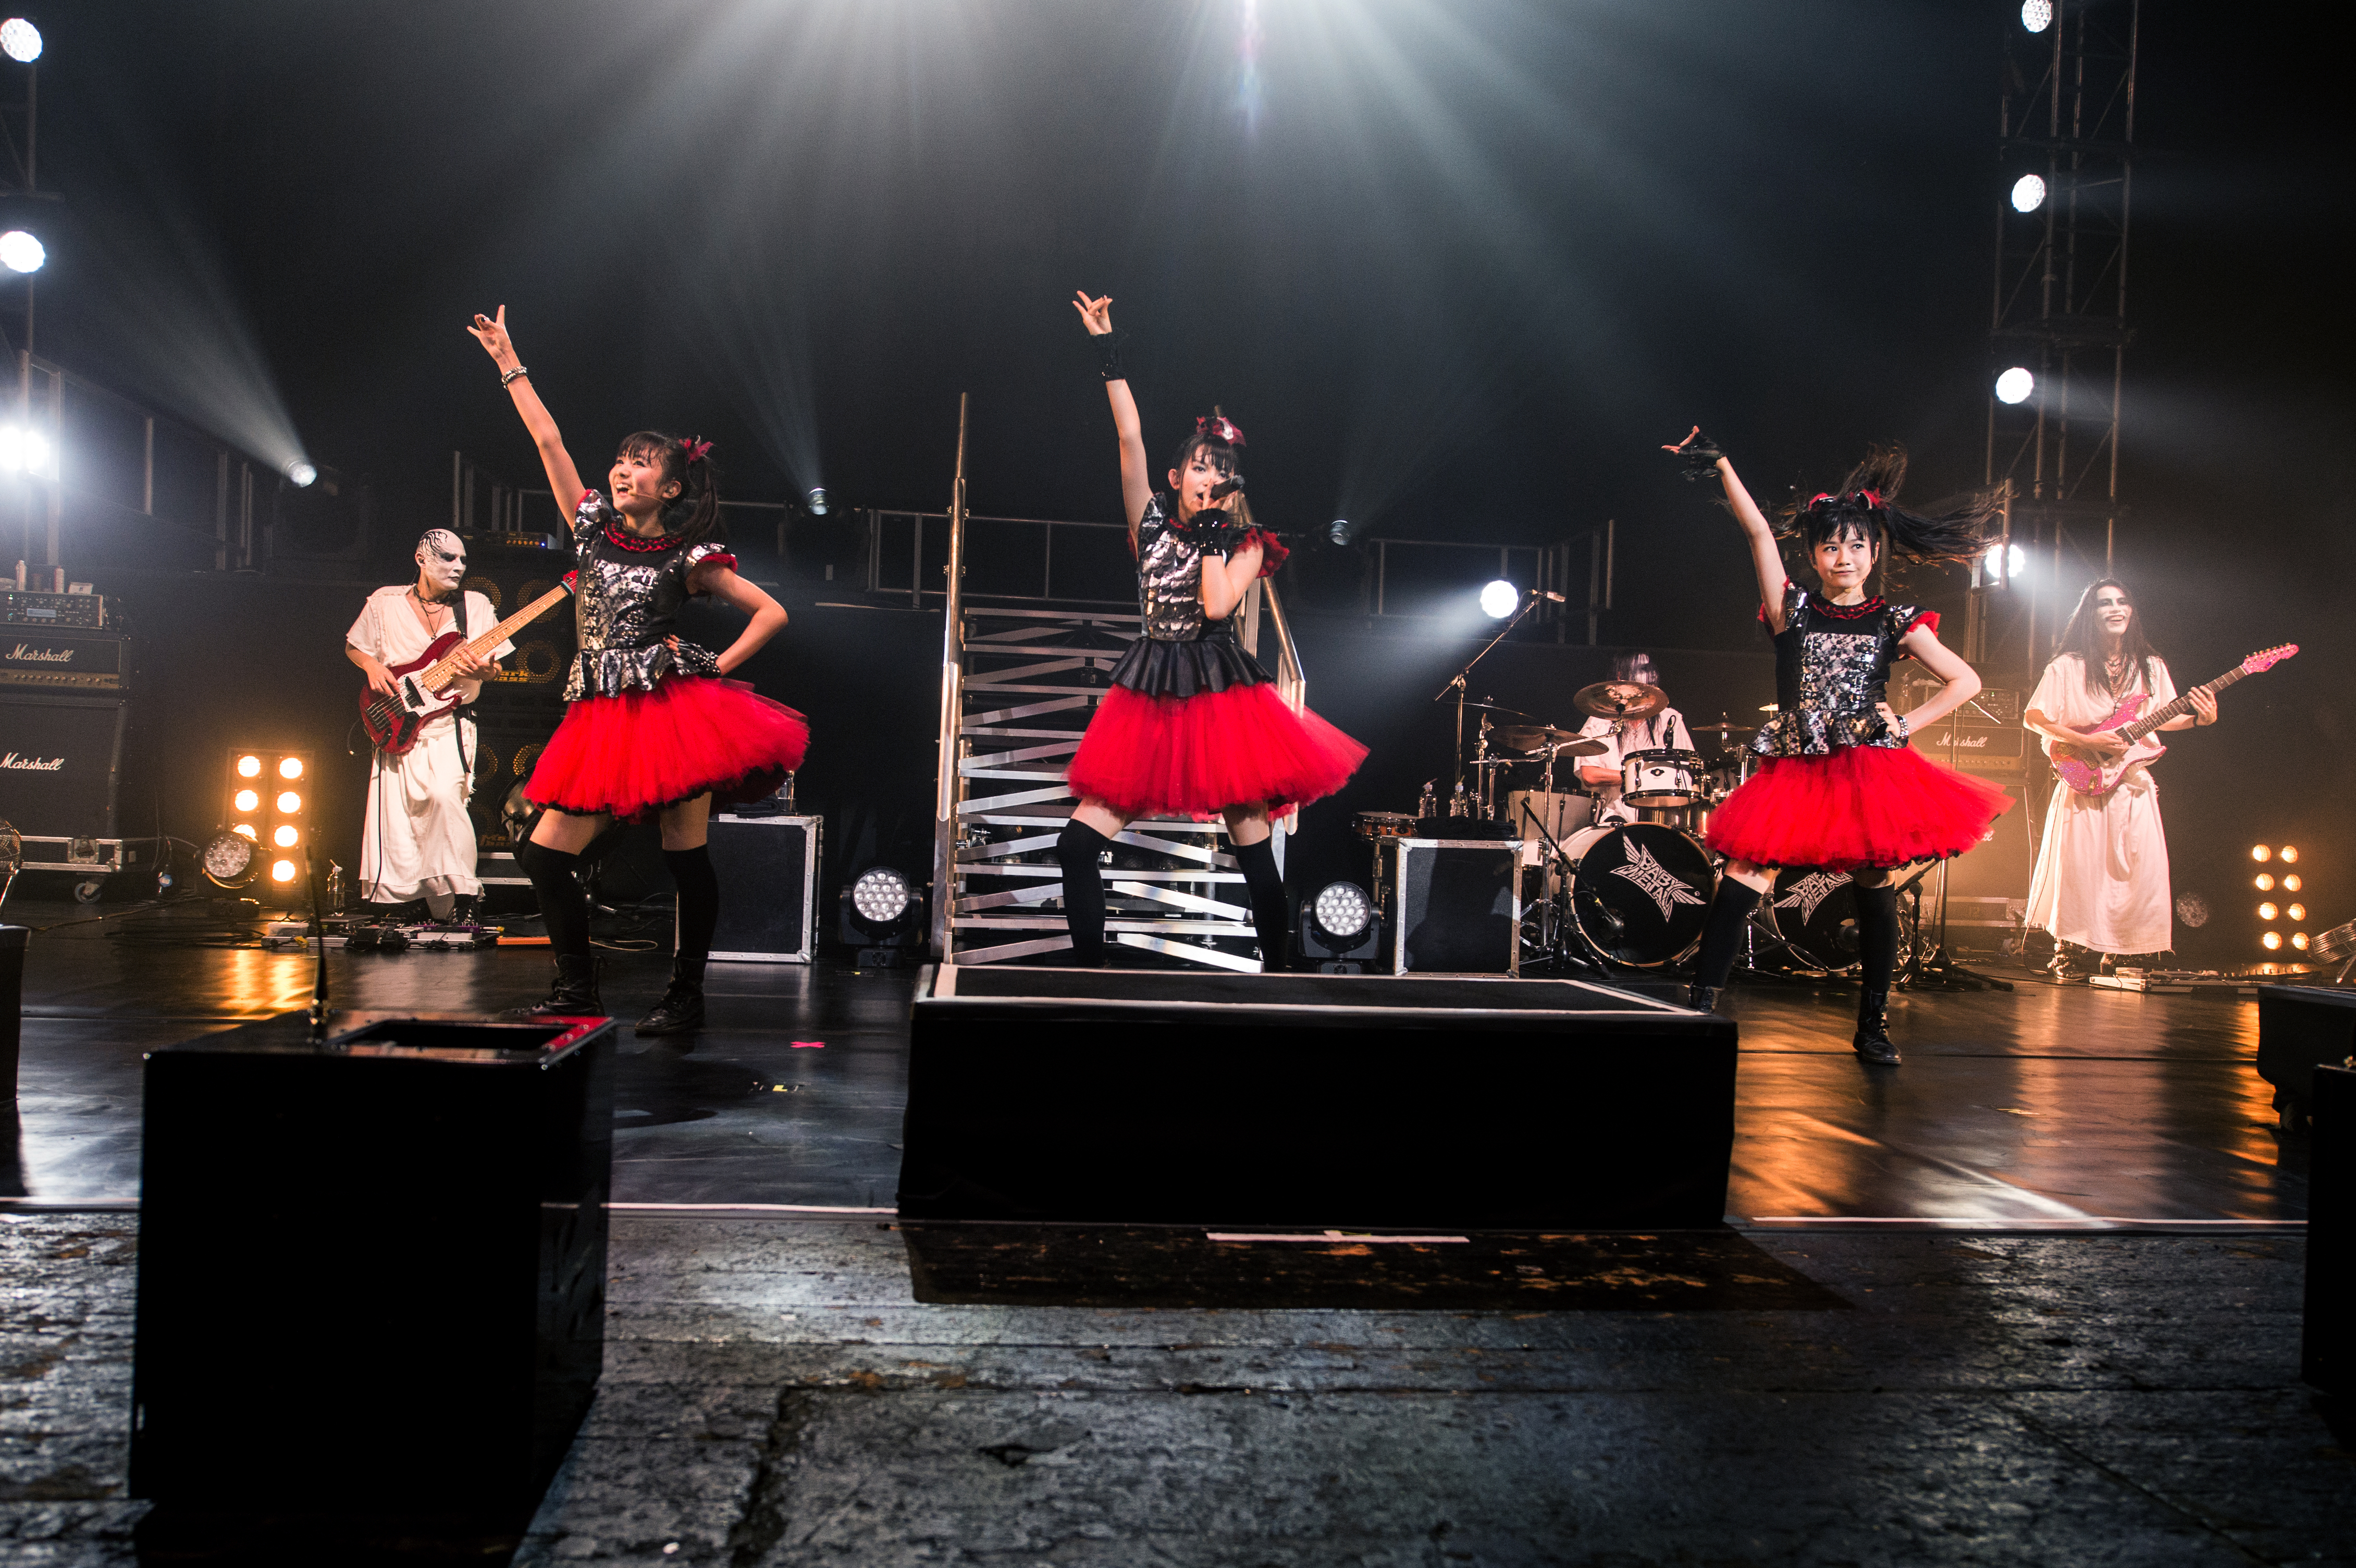 Explain to me why you think BABYMETAL is metal. : BABYMETAL